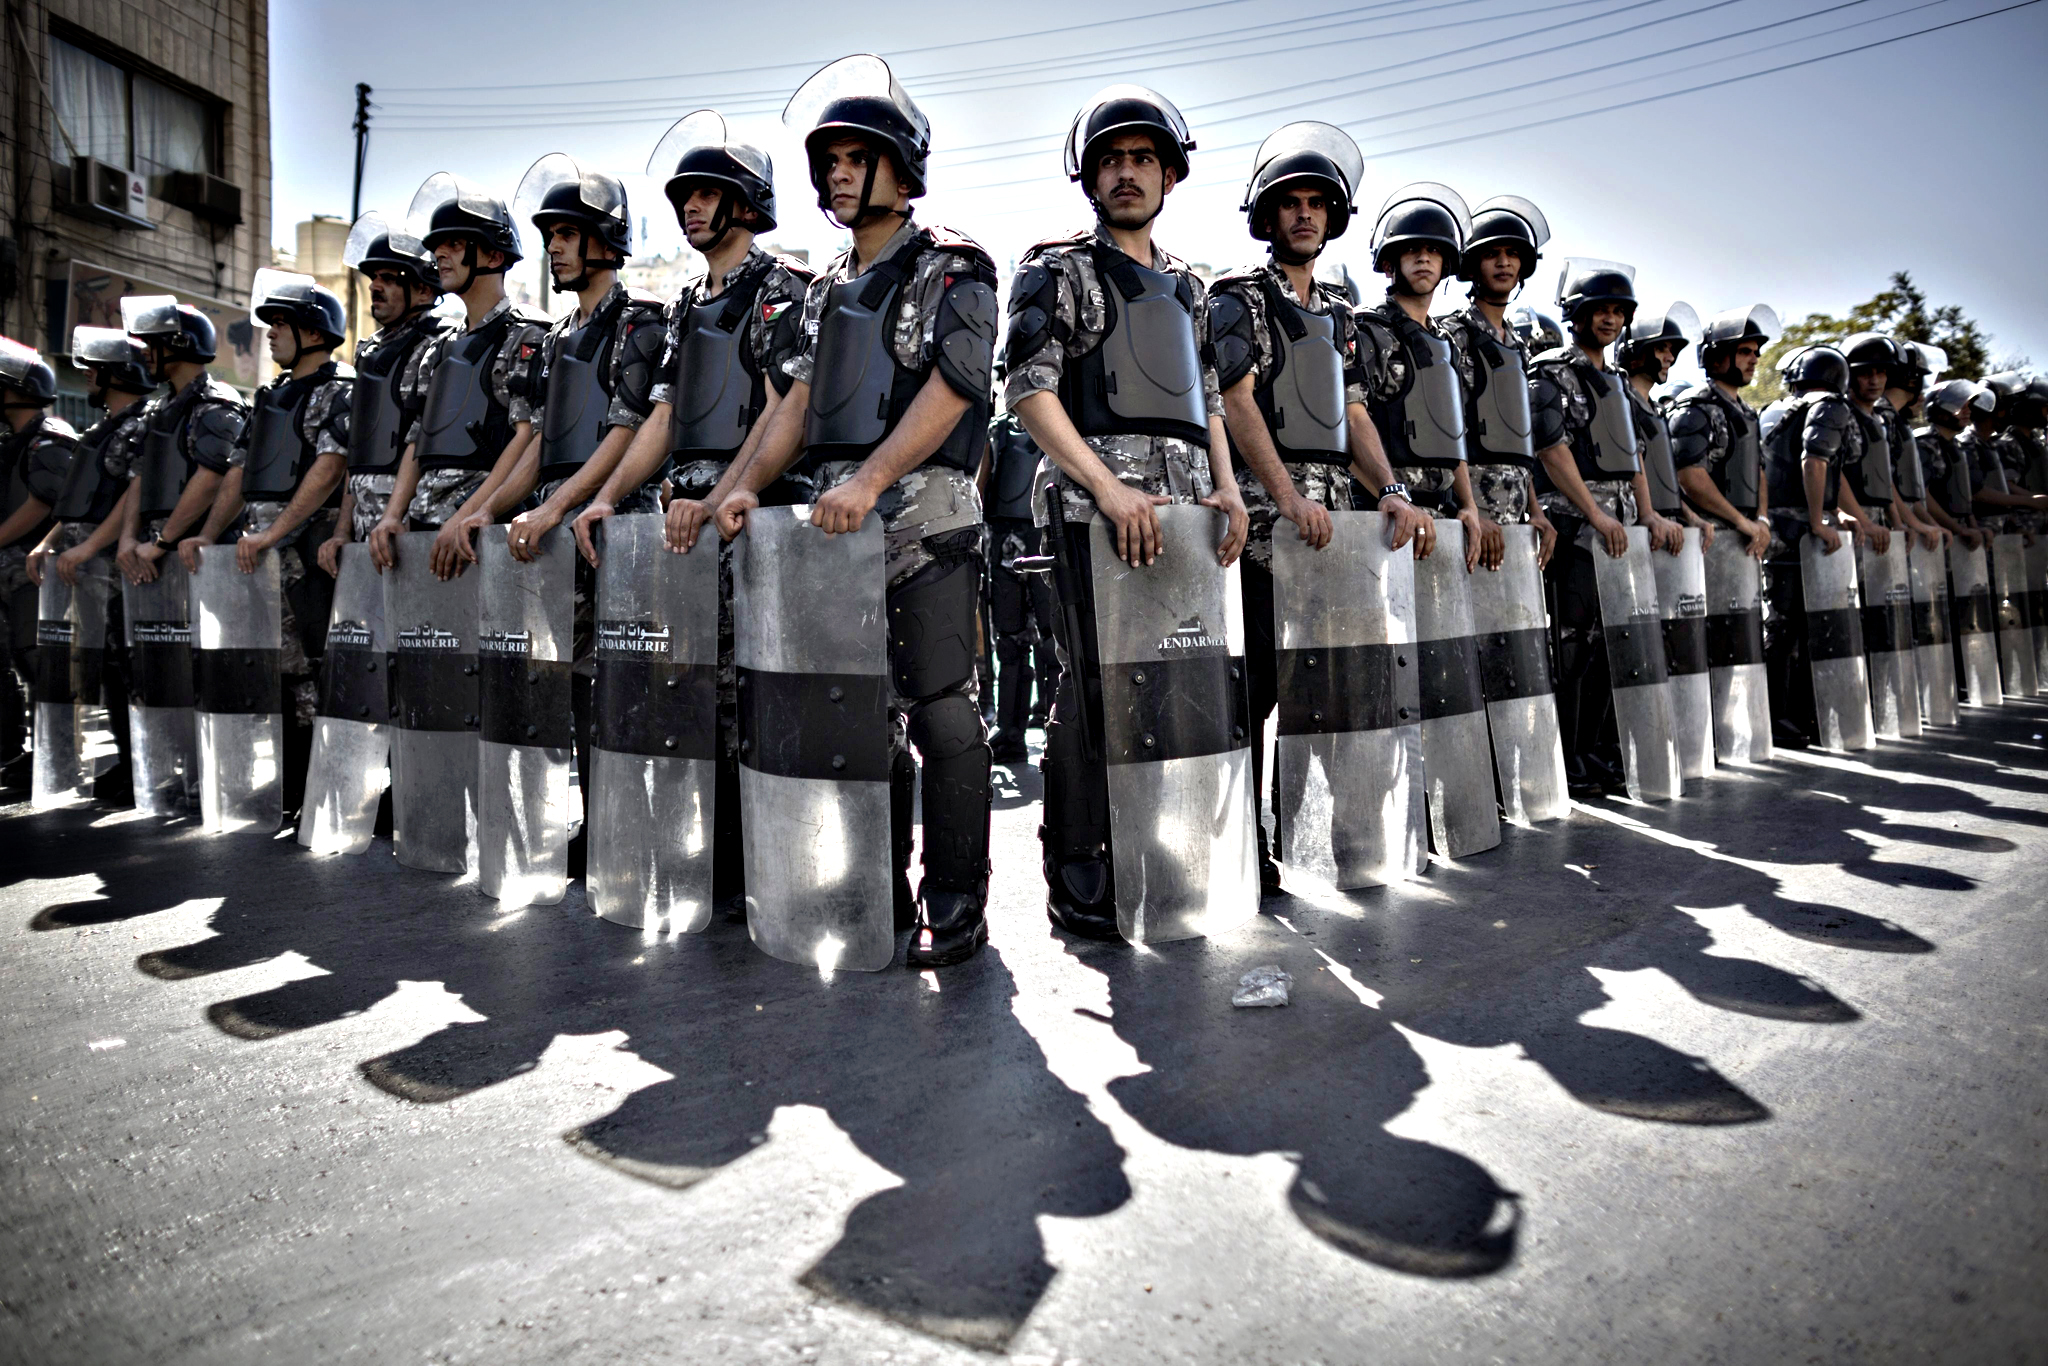 Jordanian riot policemen stand guard during a protest following the Friday prayers in Amman, Jordan, 18 September 2015. Several thousand people marched in solidarity with Palestinians who clashed with Israeli security forces around the Al-Aqsa Mosque, Islam's third holiest site, in Jerusalem for several consecutive days